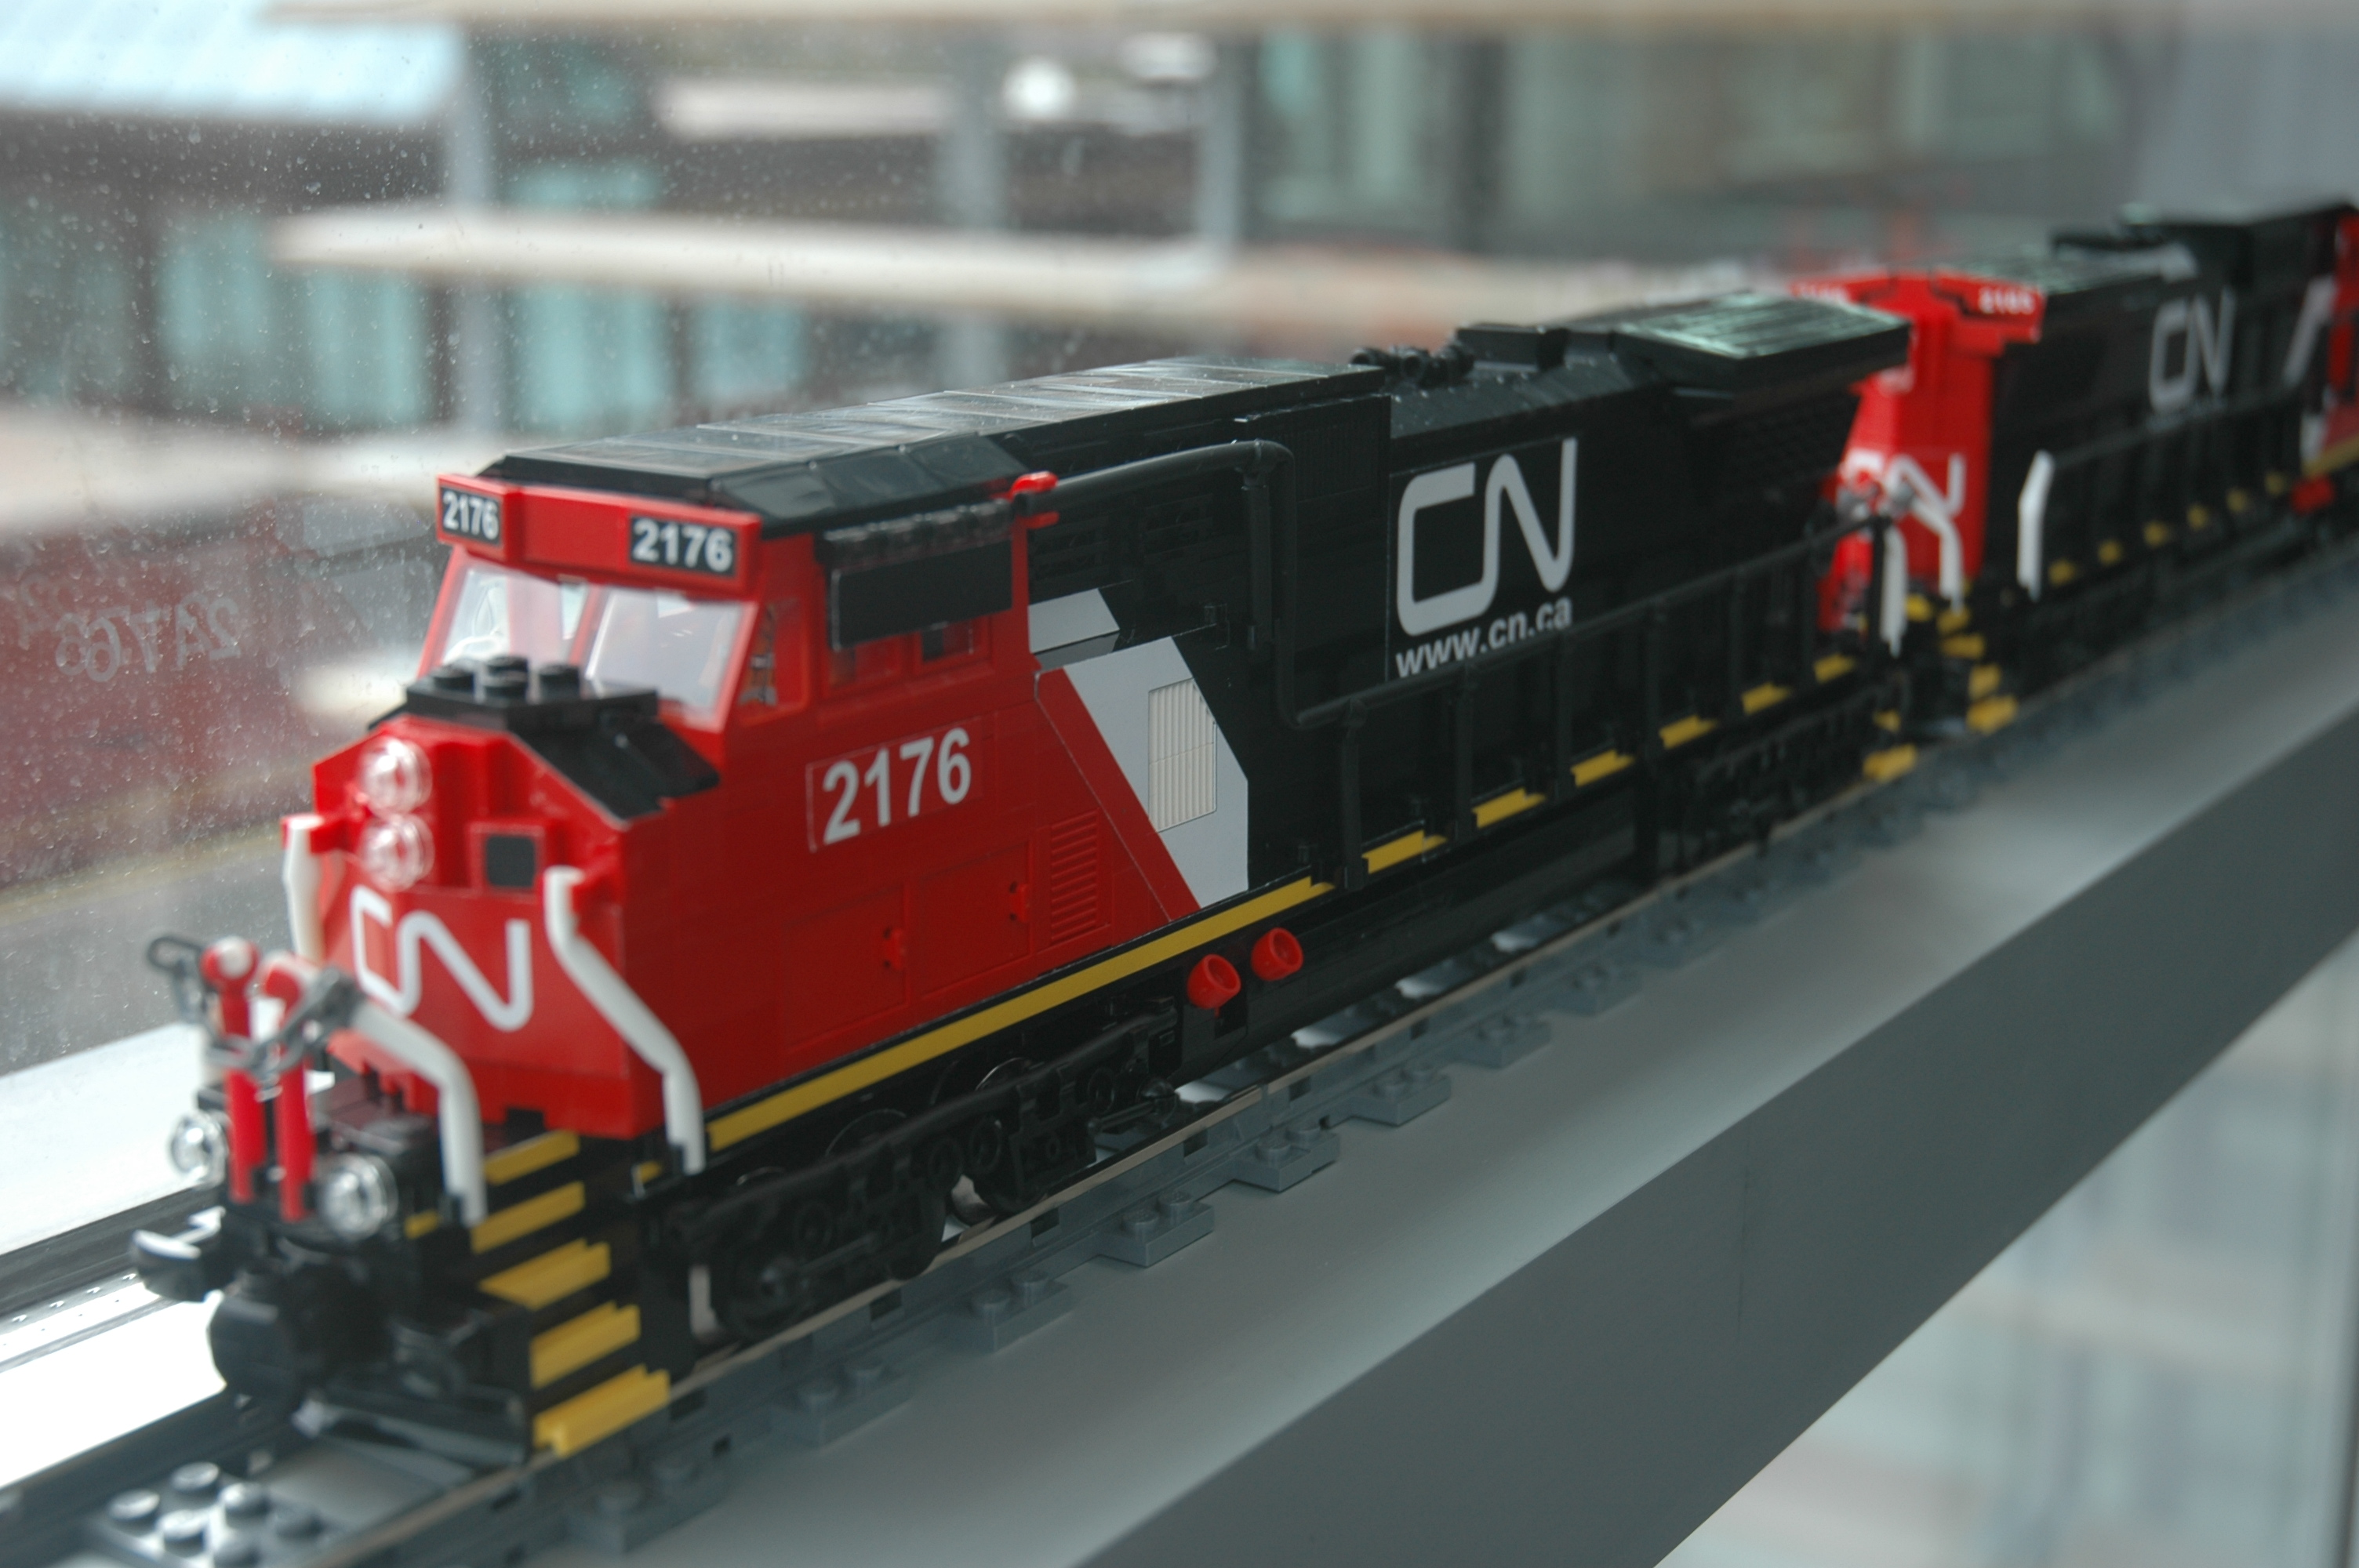 lego_cn_freight_engine_c40-8w_dash_8_main2.jpg